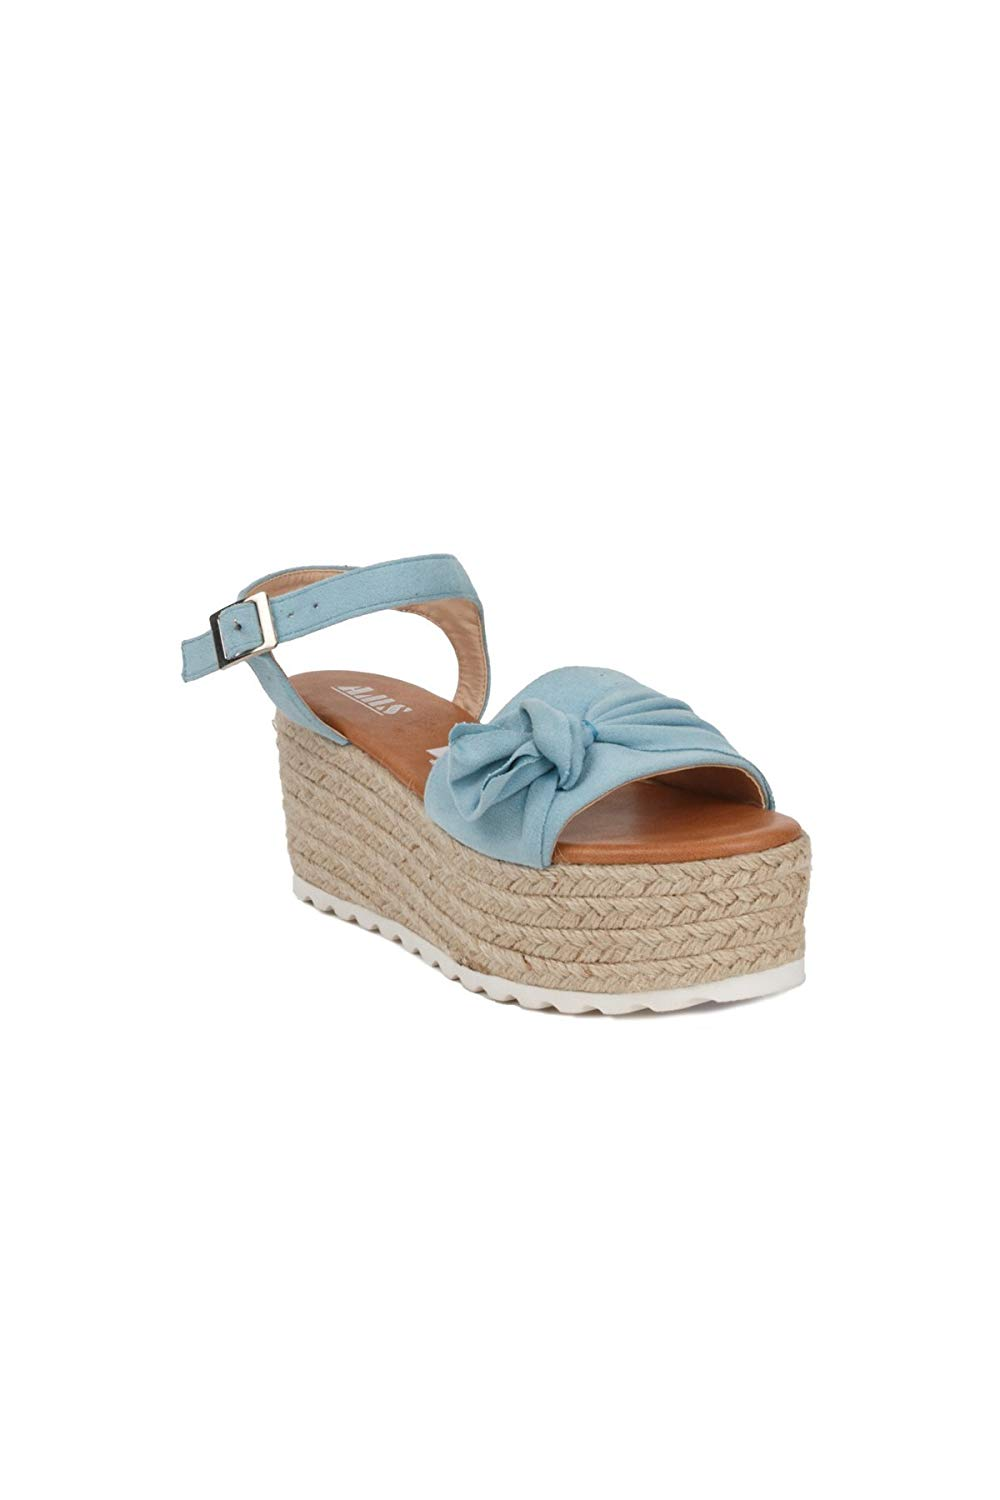 0ff72a51f47 Cheap Tie Up Espadrille, find Tie Up Espadrille deals on line at ...